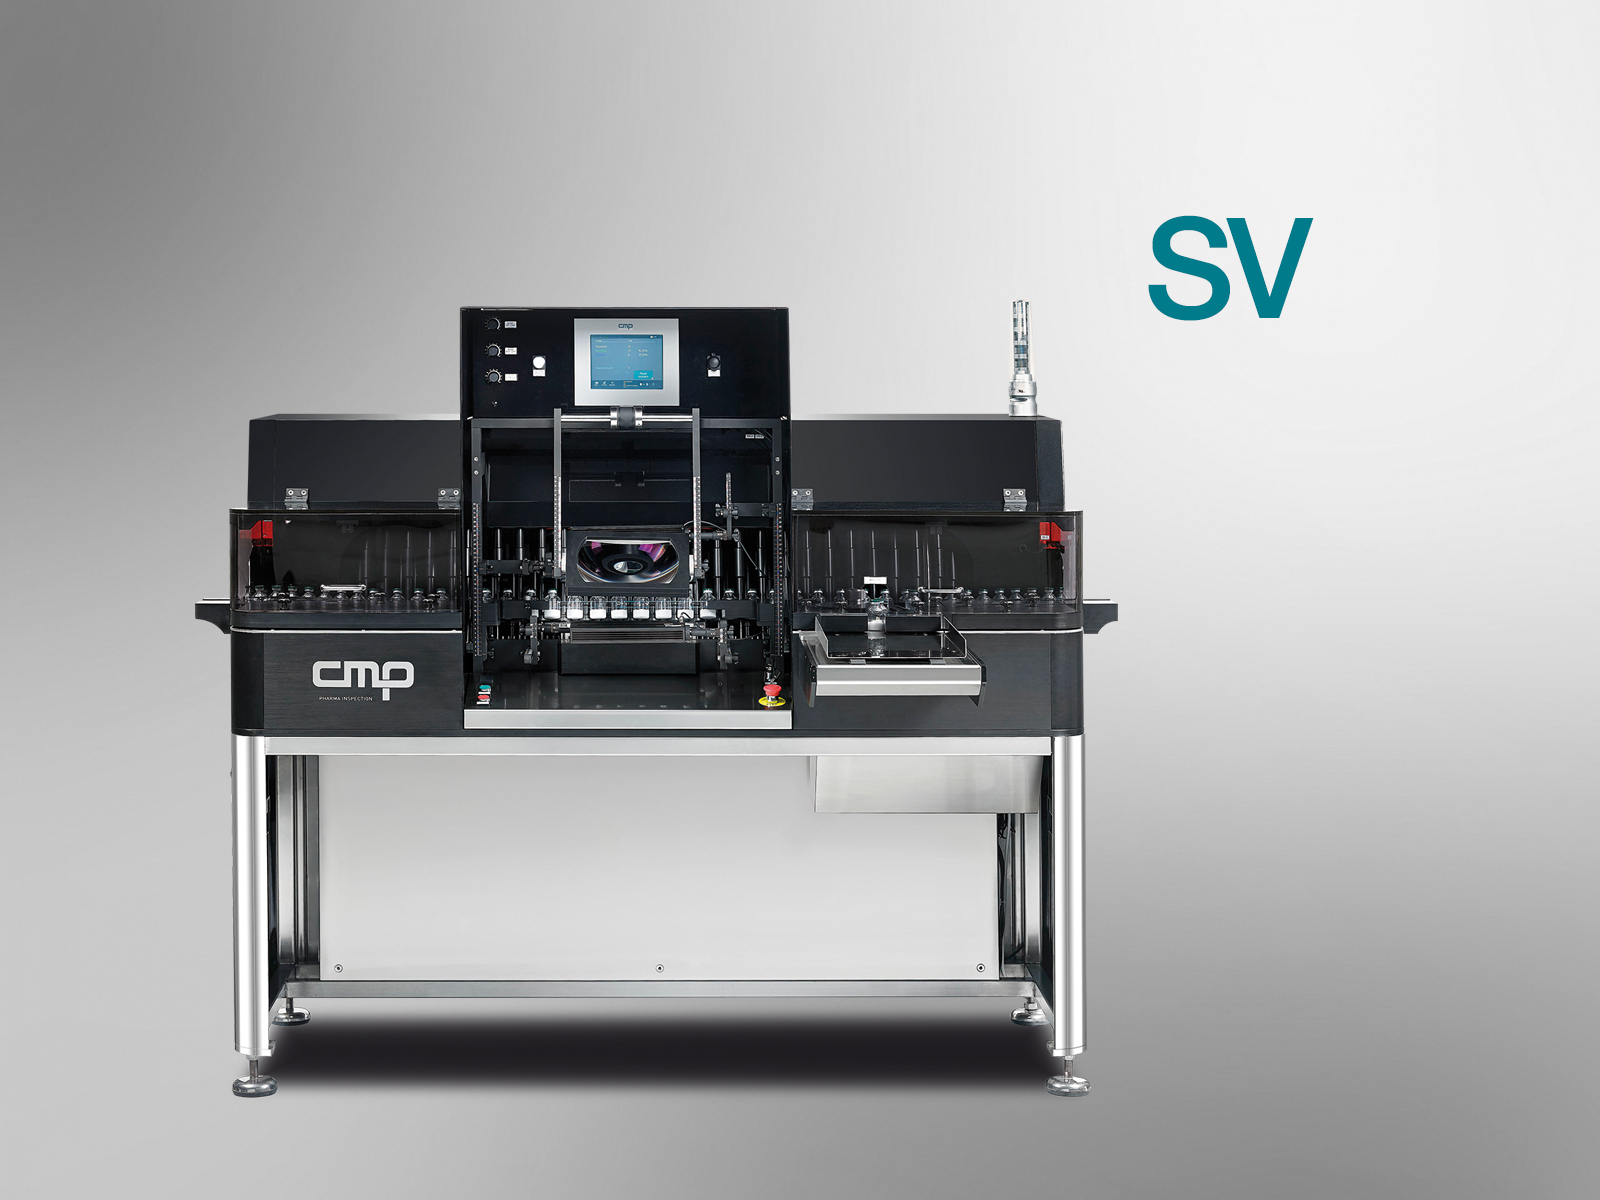 Semi-automatic inspection machine for ampoules, vials or cartridges